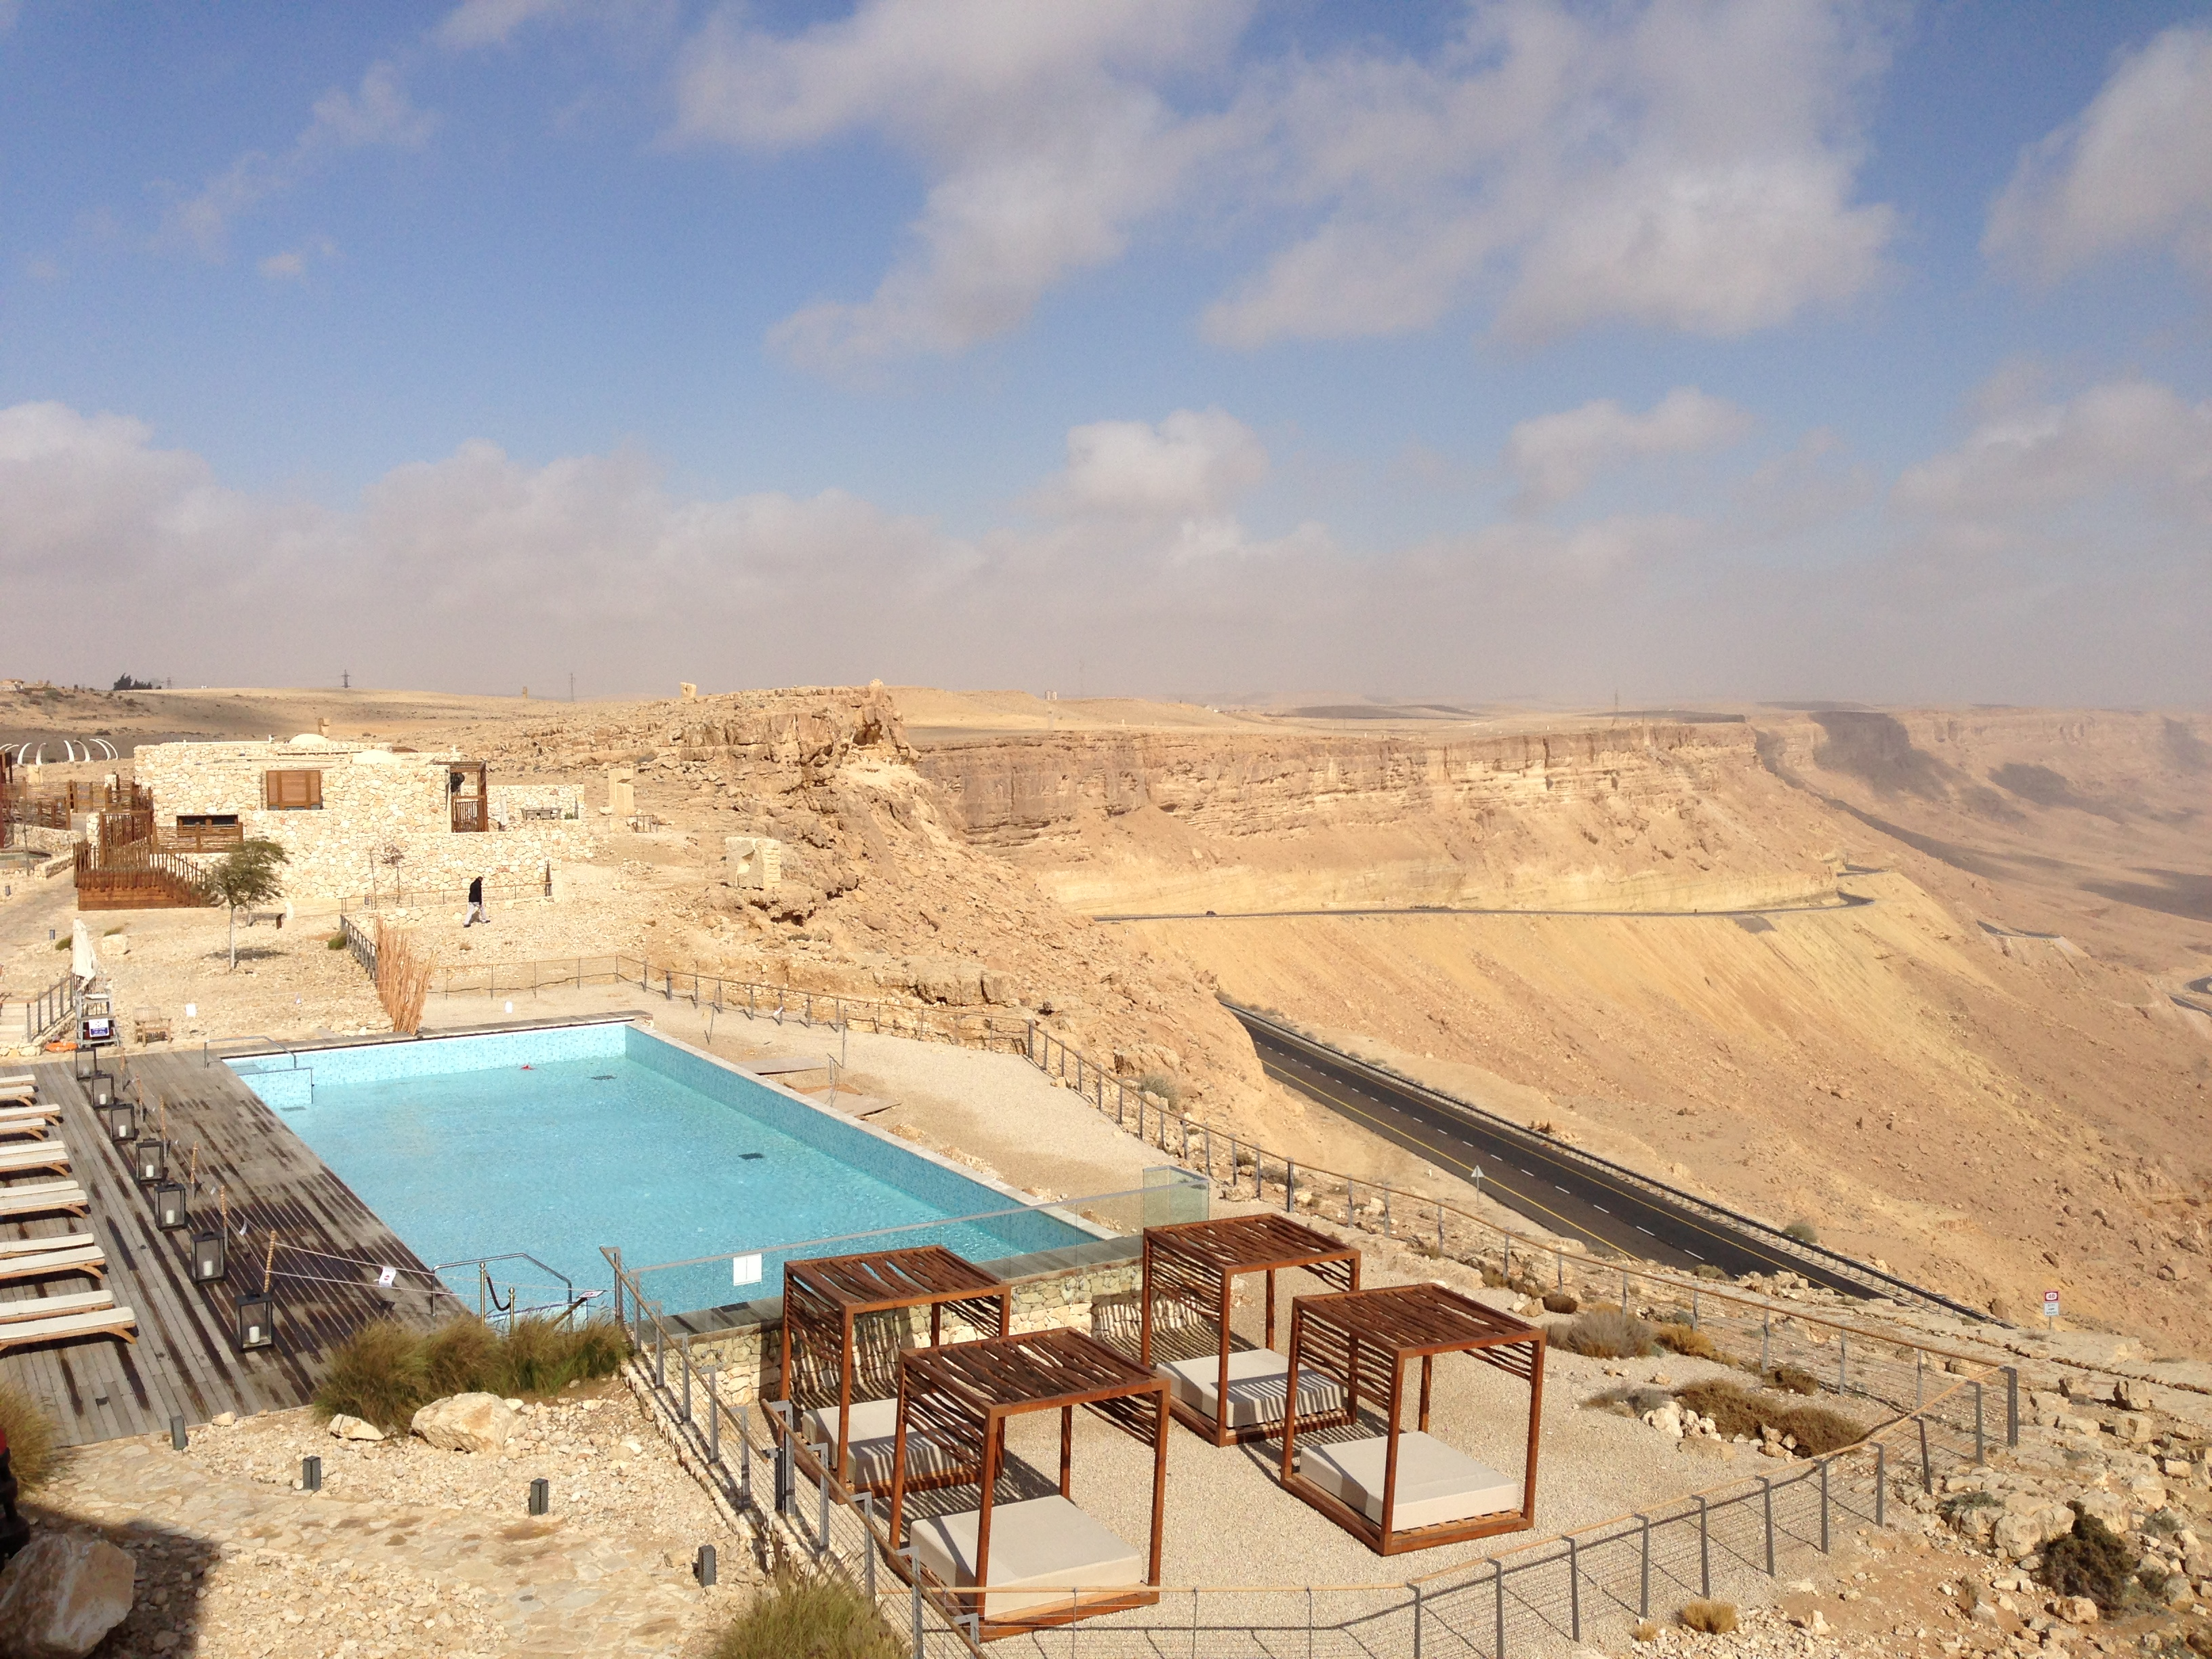 Mitzpe Ramon Israel  City pictures : Keeping Kosher In Mitzpe Ramon, Israel | YeahThatsKosher.com ...